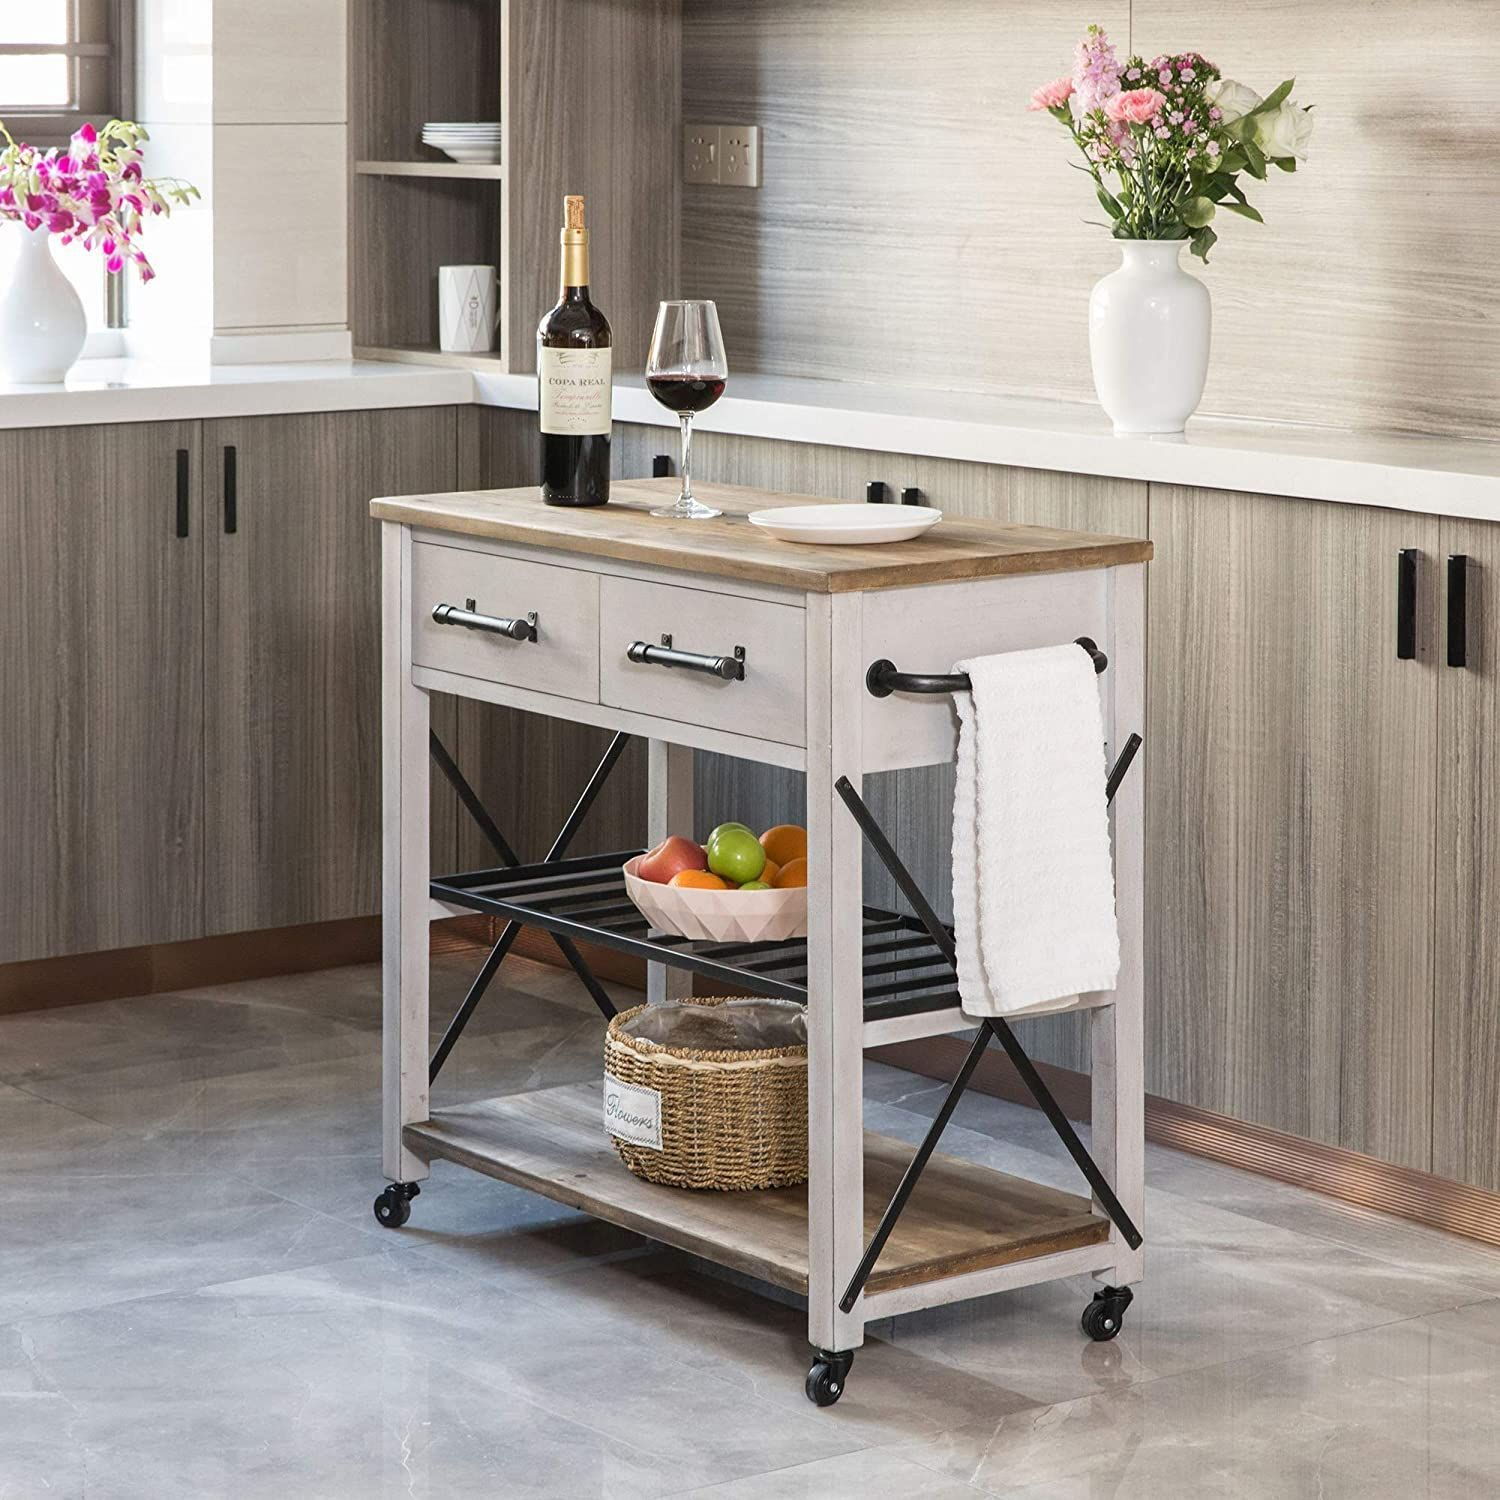 100 Farmhouse Bar Carts And Rustic Kitchen Carts For Your Farmhouse Style Kitchen We Absolutely Love Farmhouse Kitchen Isl